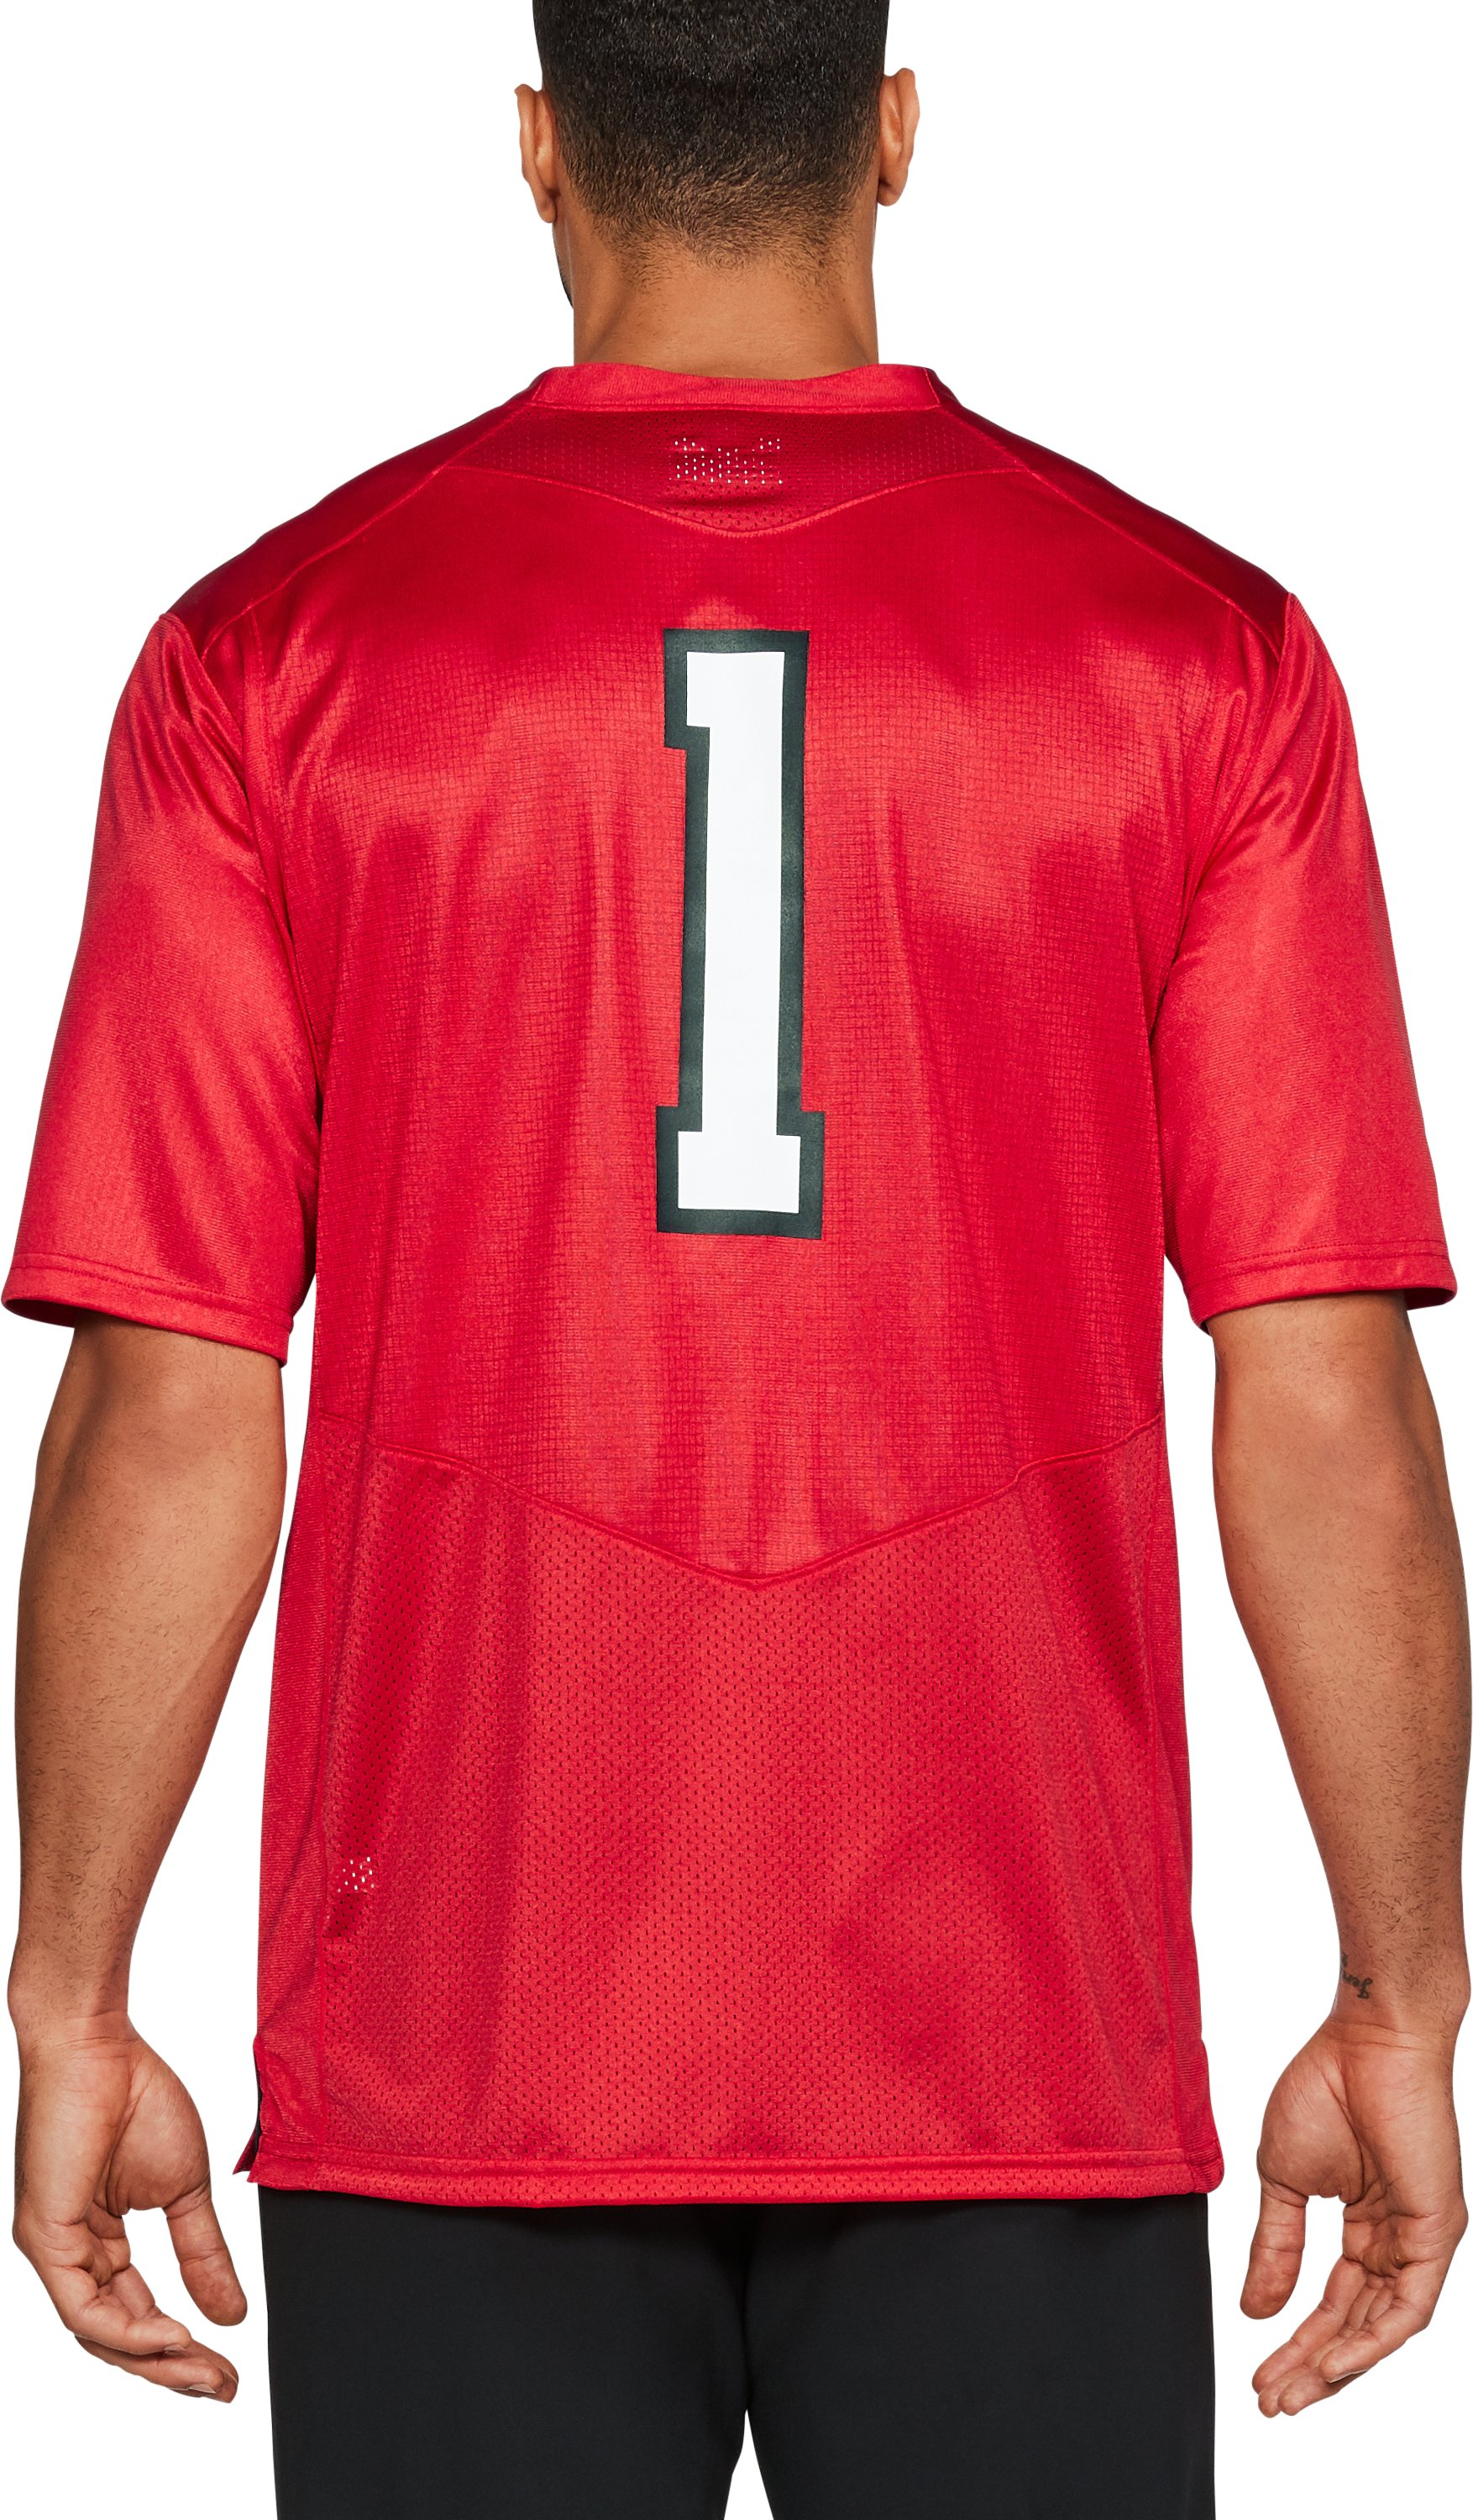 Men's Texas Tech Replica Jersey, Red, undefined